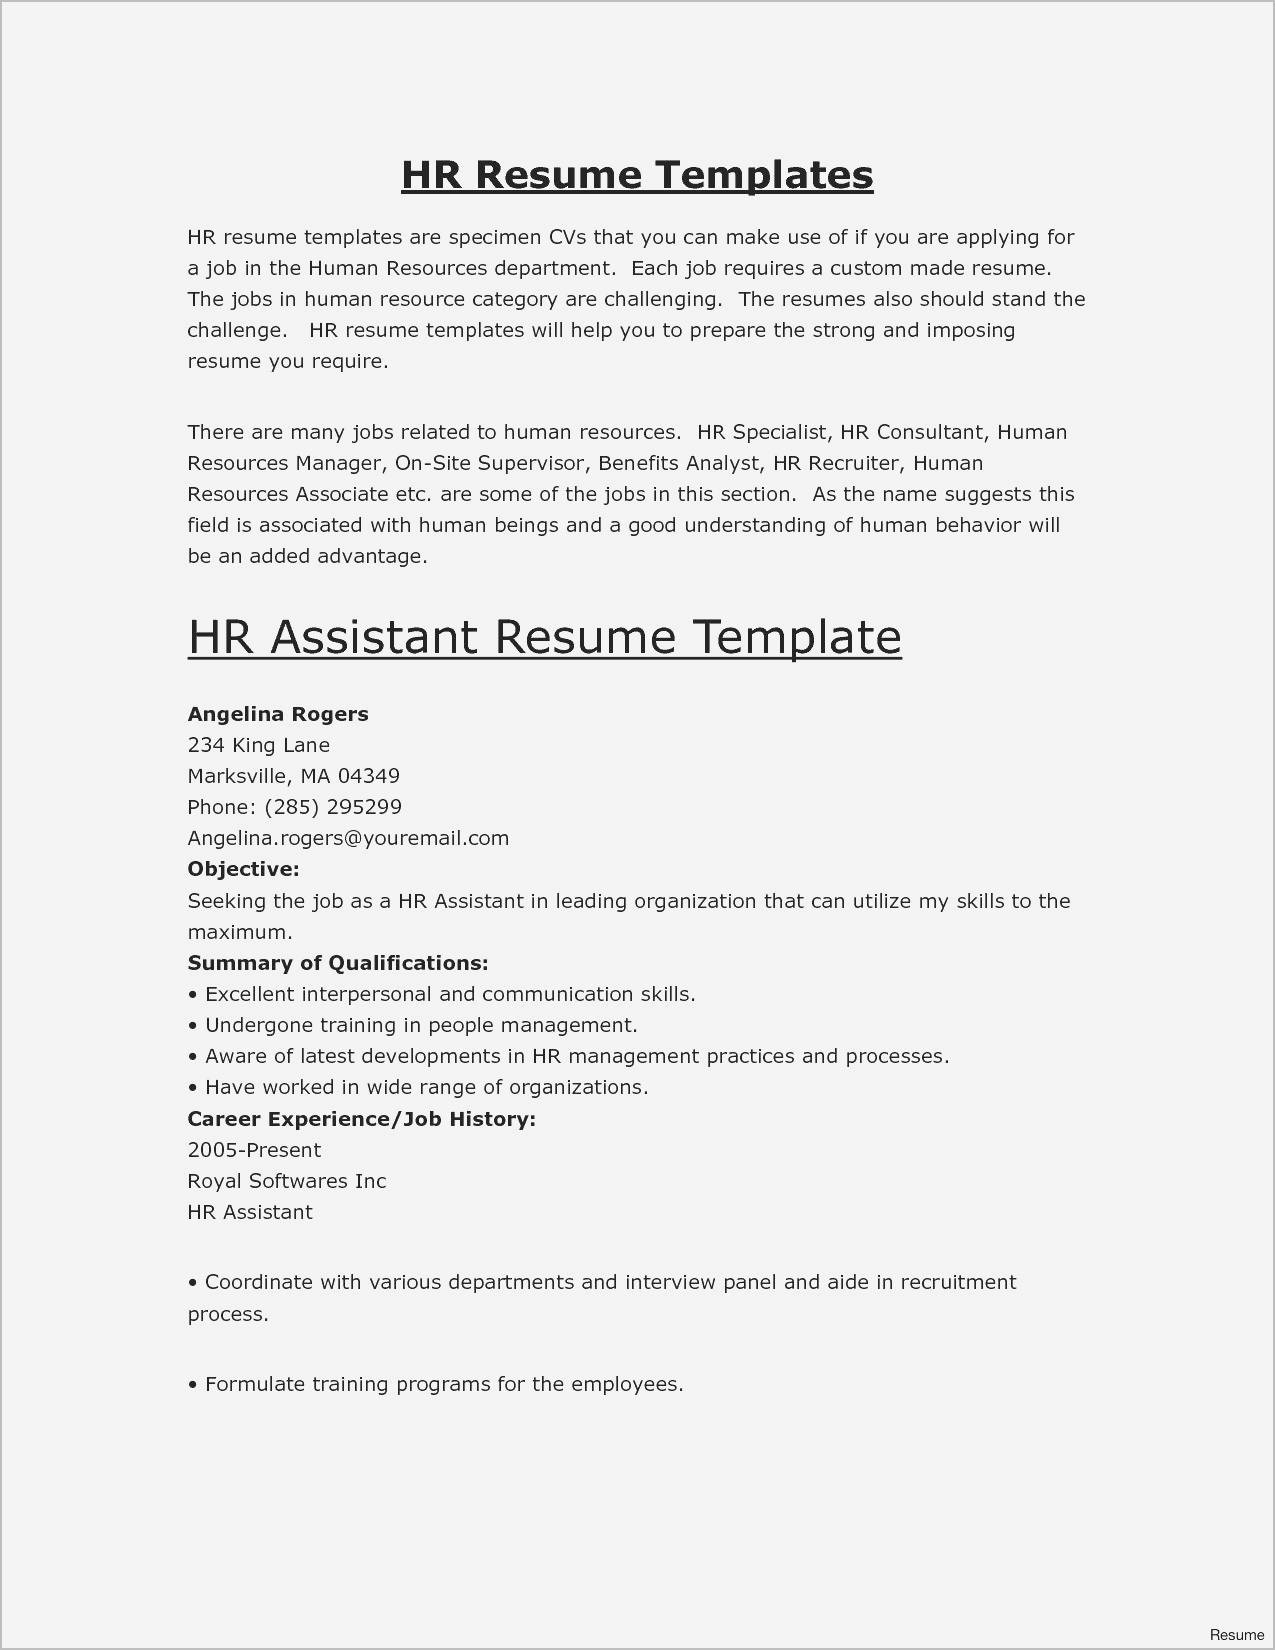 Videographer Resume Template - ¢Ë†Å¡ Change Template Powerpoint Change Powerpoint Template Best Ppt